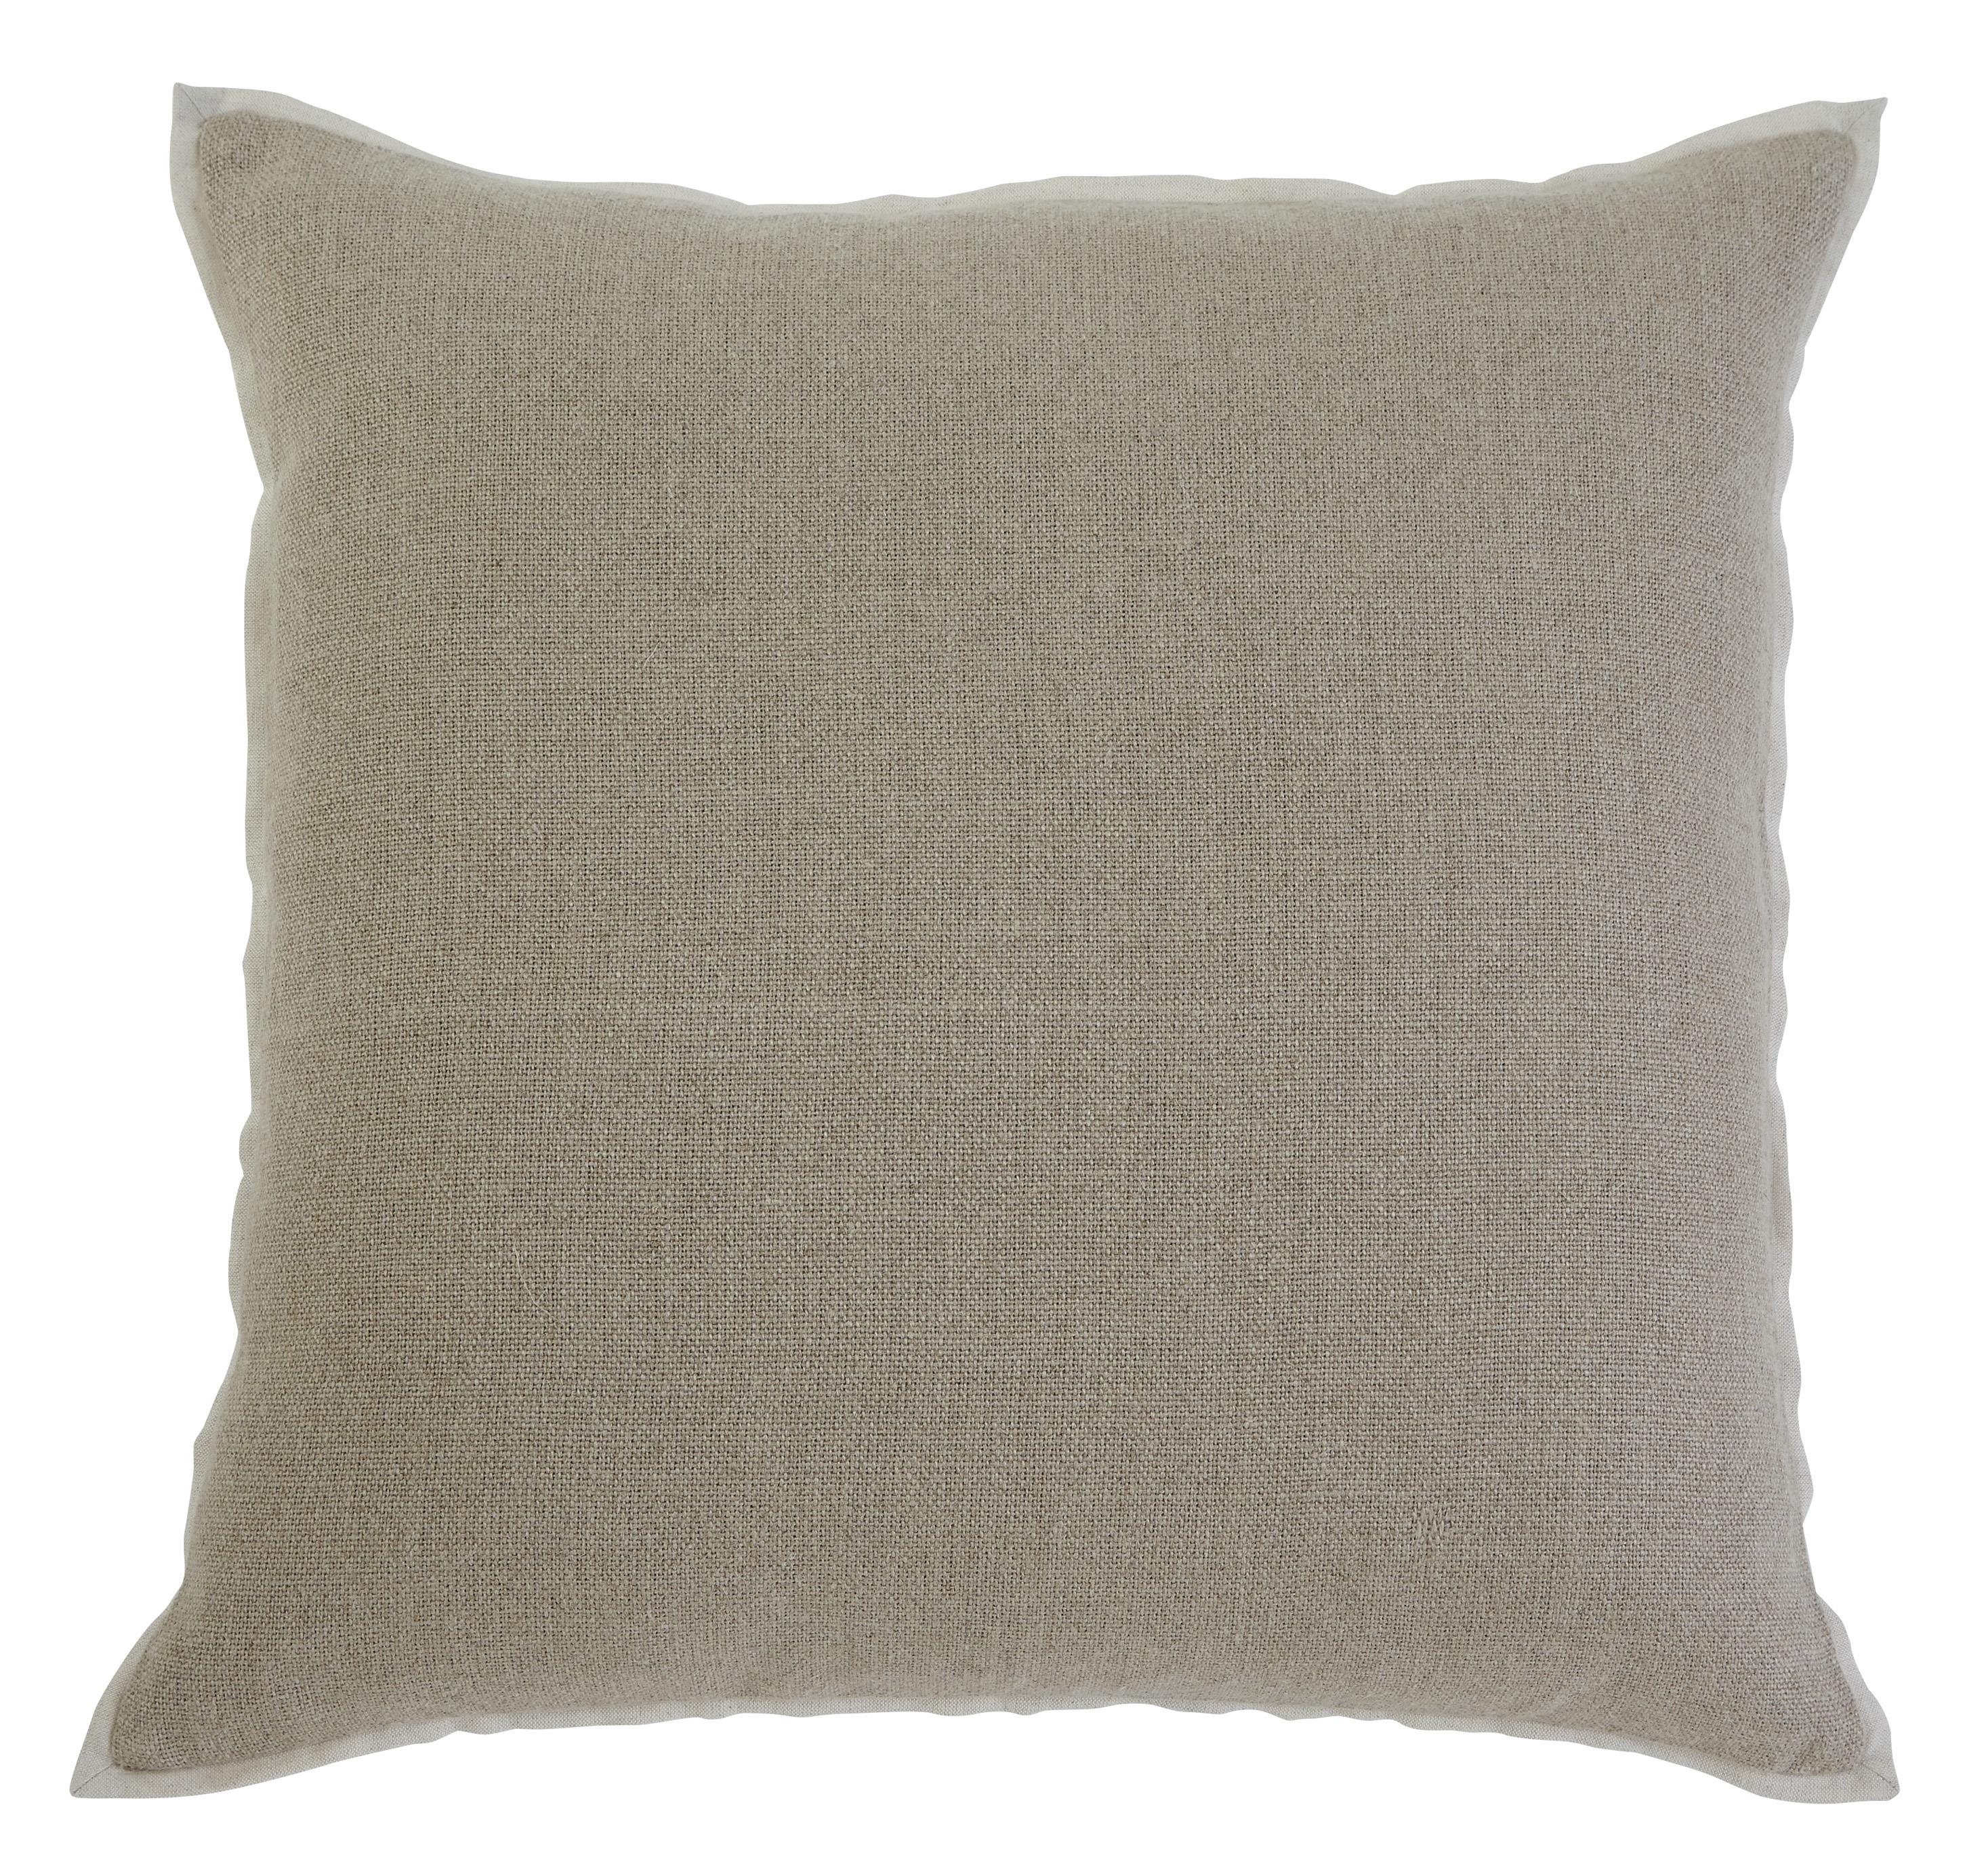 Signature Design by Ashley Pillows Solid - Khaki Pillow Cover - Item Number: A1000342P